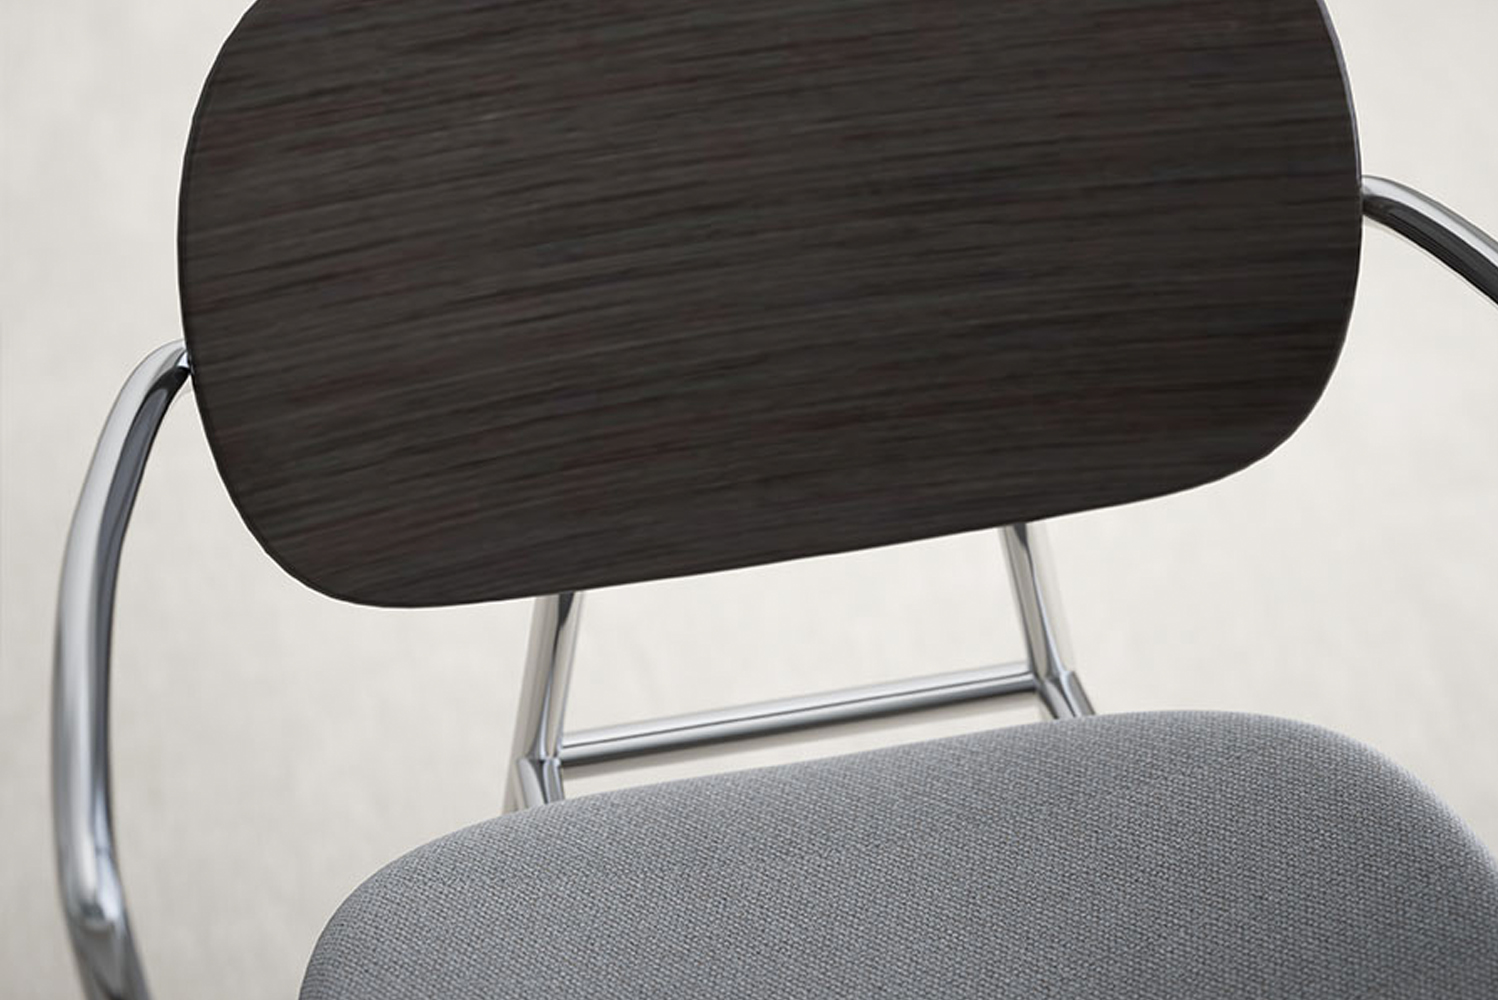 The collection includes chairs (with or without arms), as well as counter-height and bar-height stools.